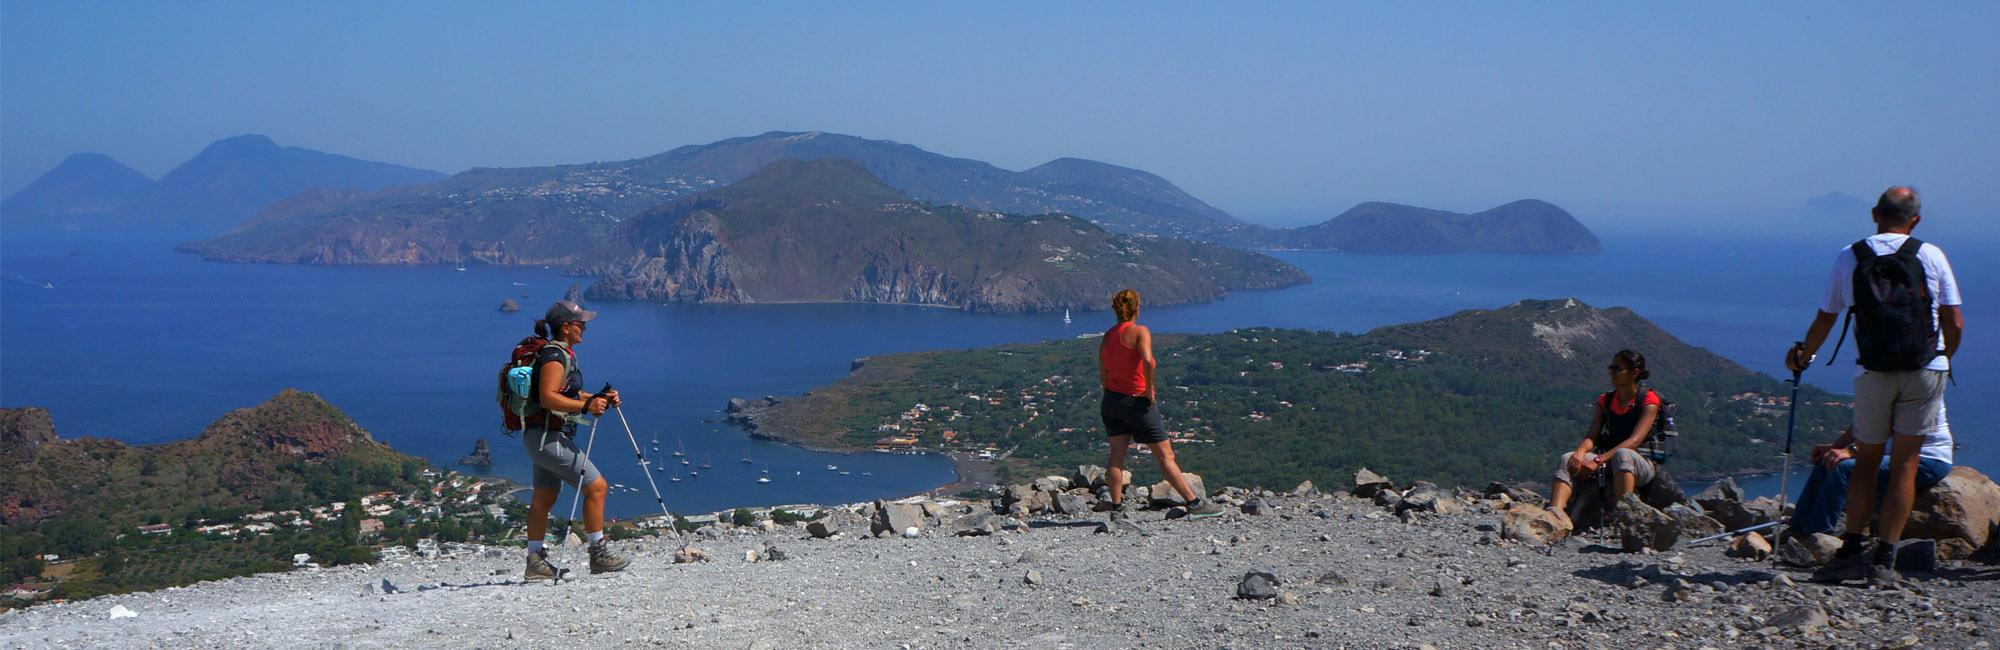 Sicily Active Volcanoes & Islands tour